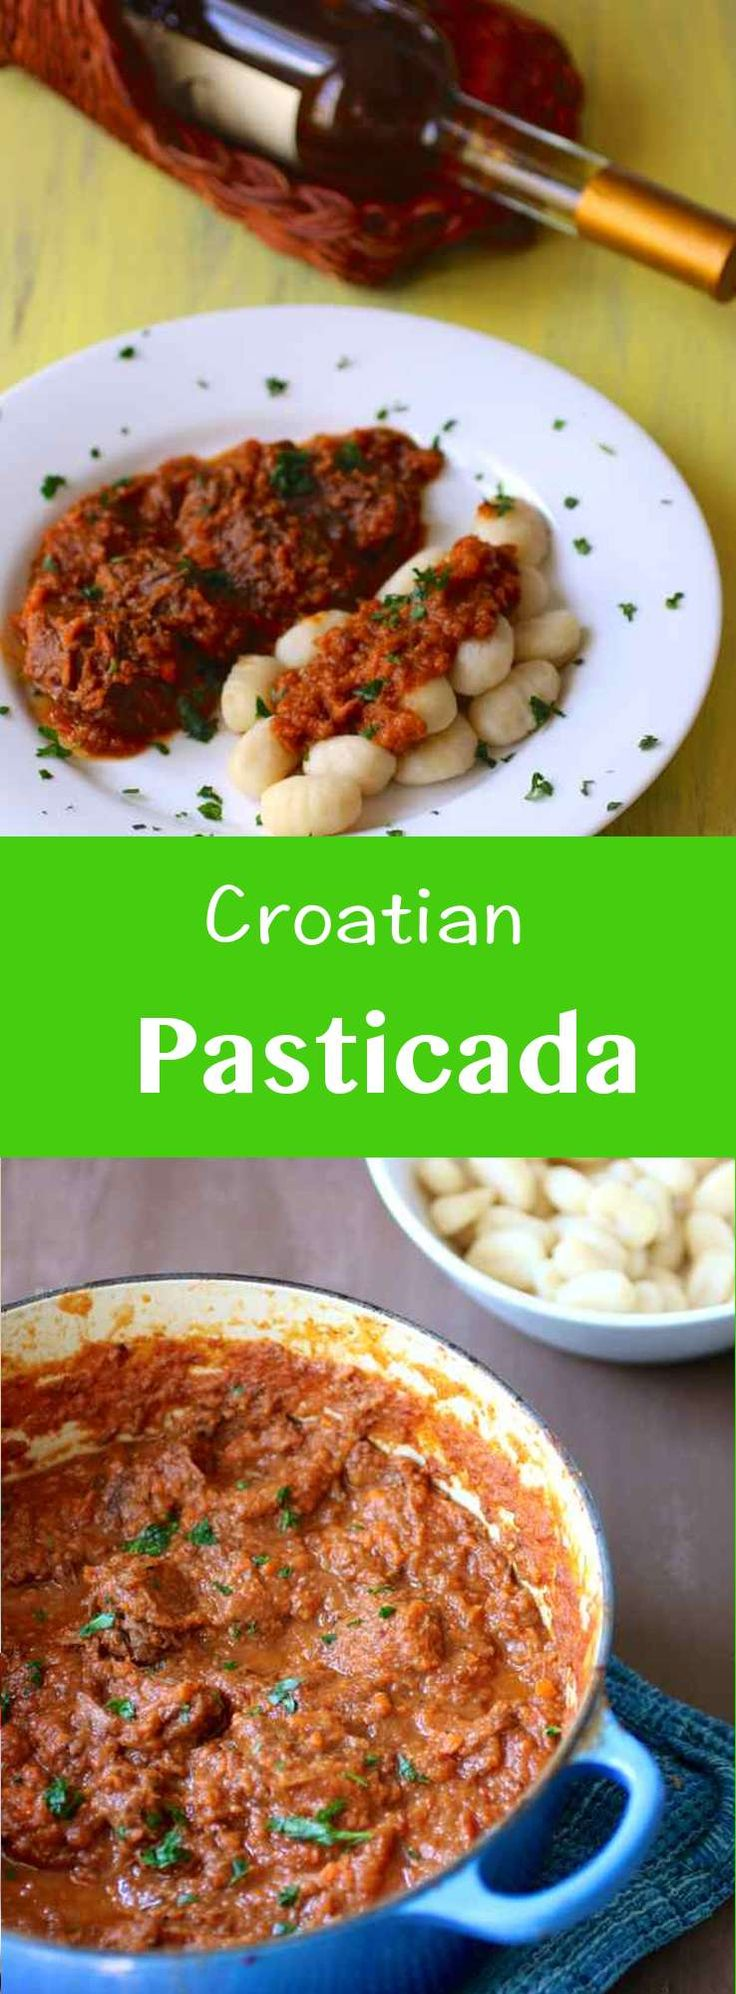 Traditional Dalmatian (Croatian) pašticada is slow-cooked beef prepared in a rich red sweet and sour sauce, usually served with gnocchi or homemade pasta. #196flavors